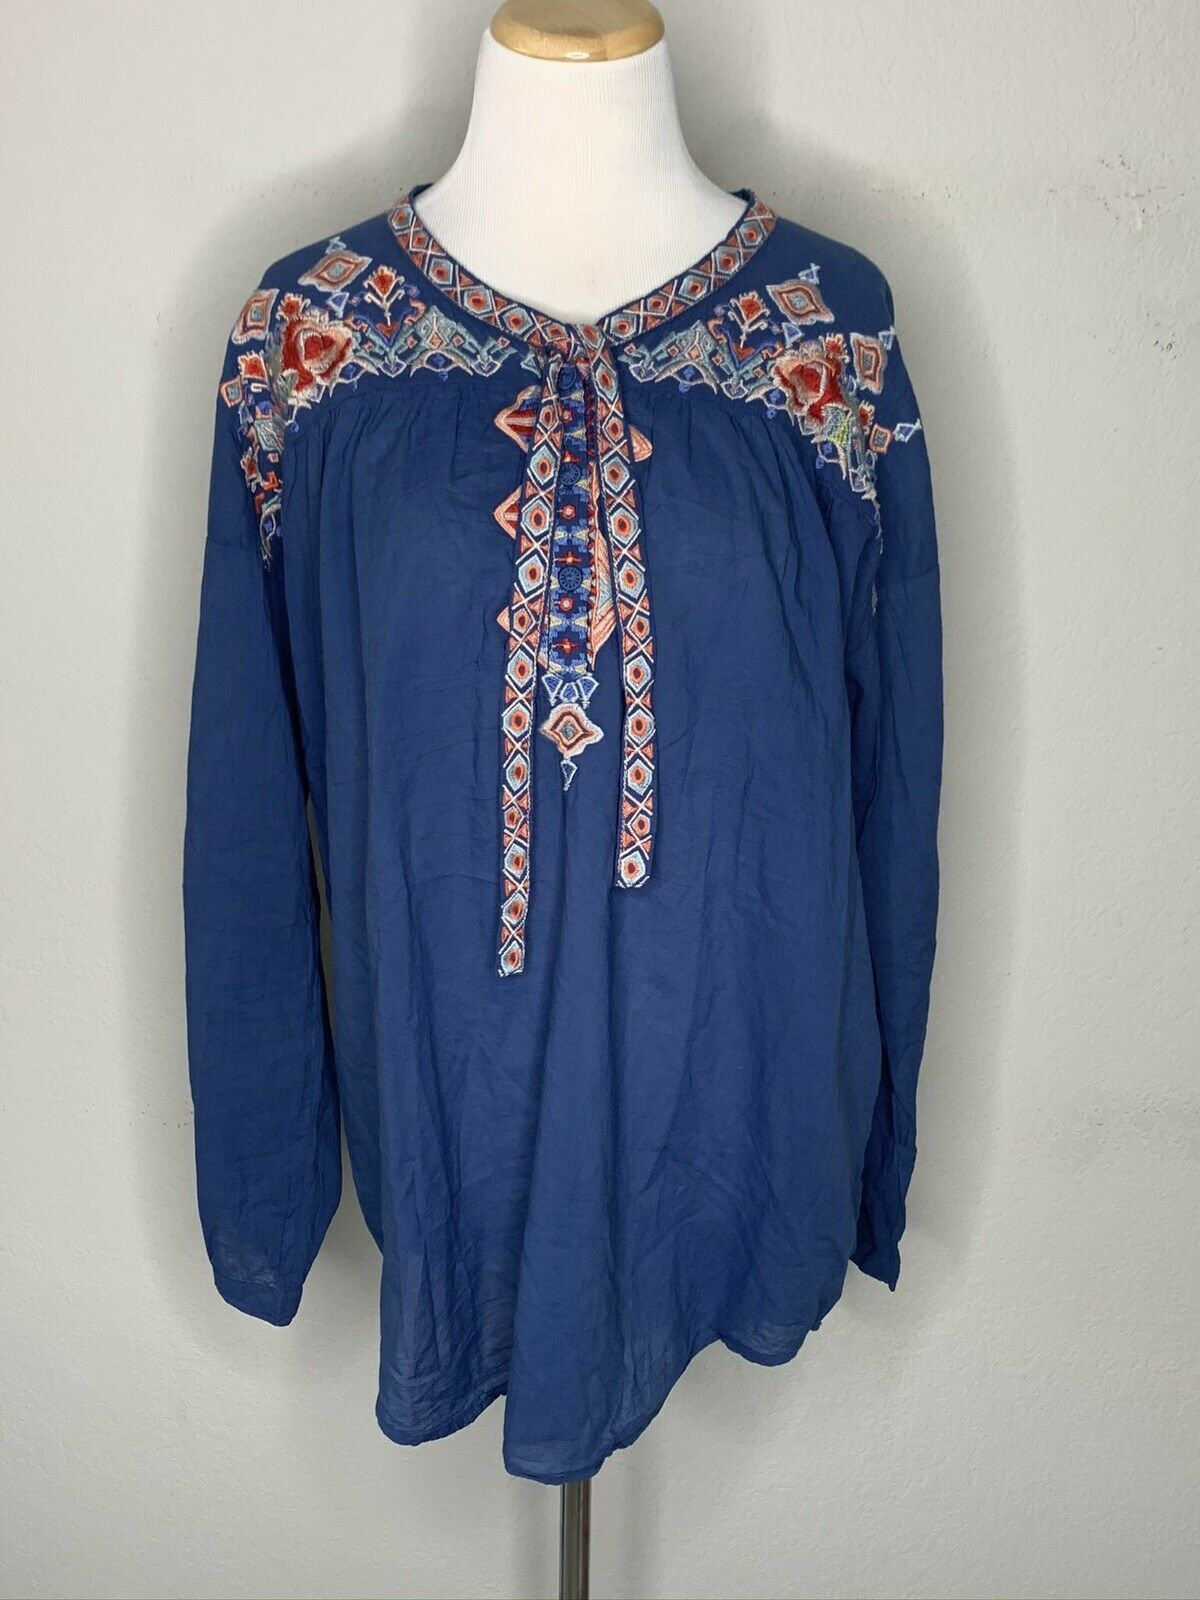 Primary image for Johnny Was Women's Gina Blouse Tunic Floral Boho Tie Top Blue $285 Sz M NWT